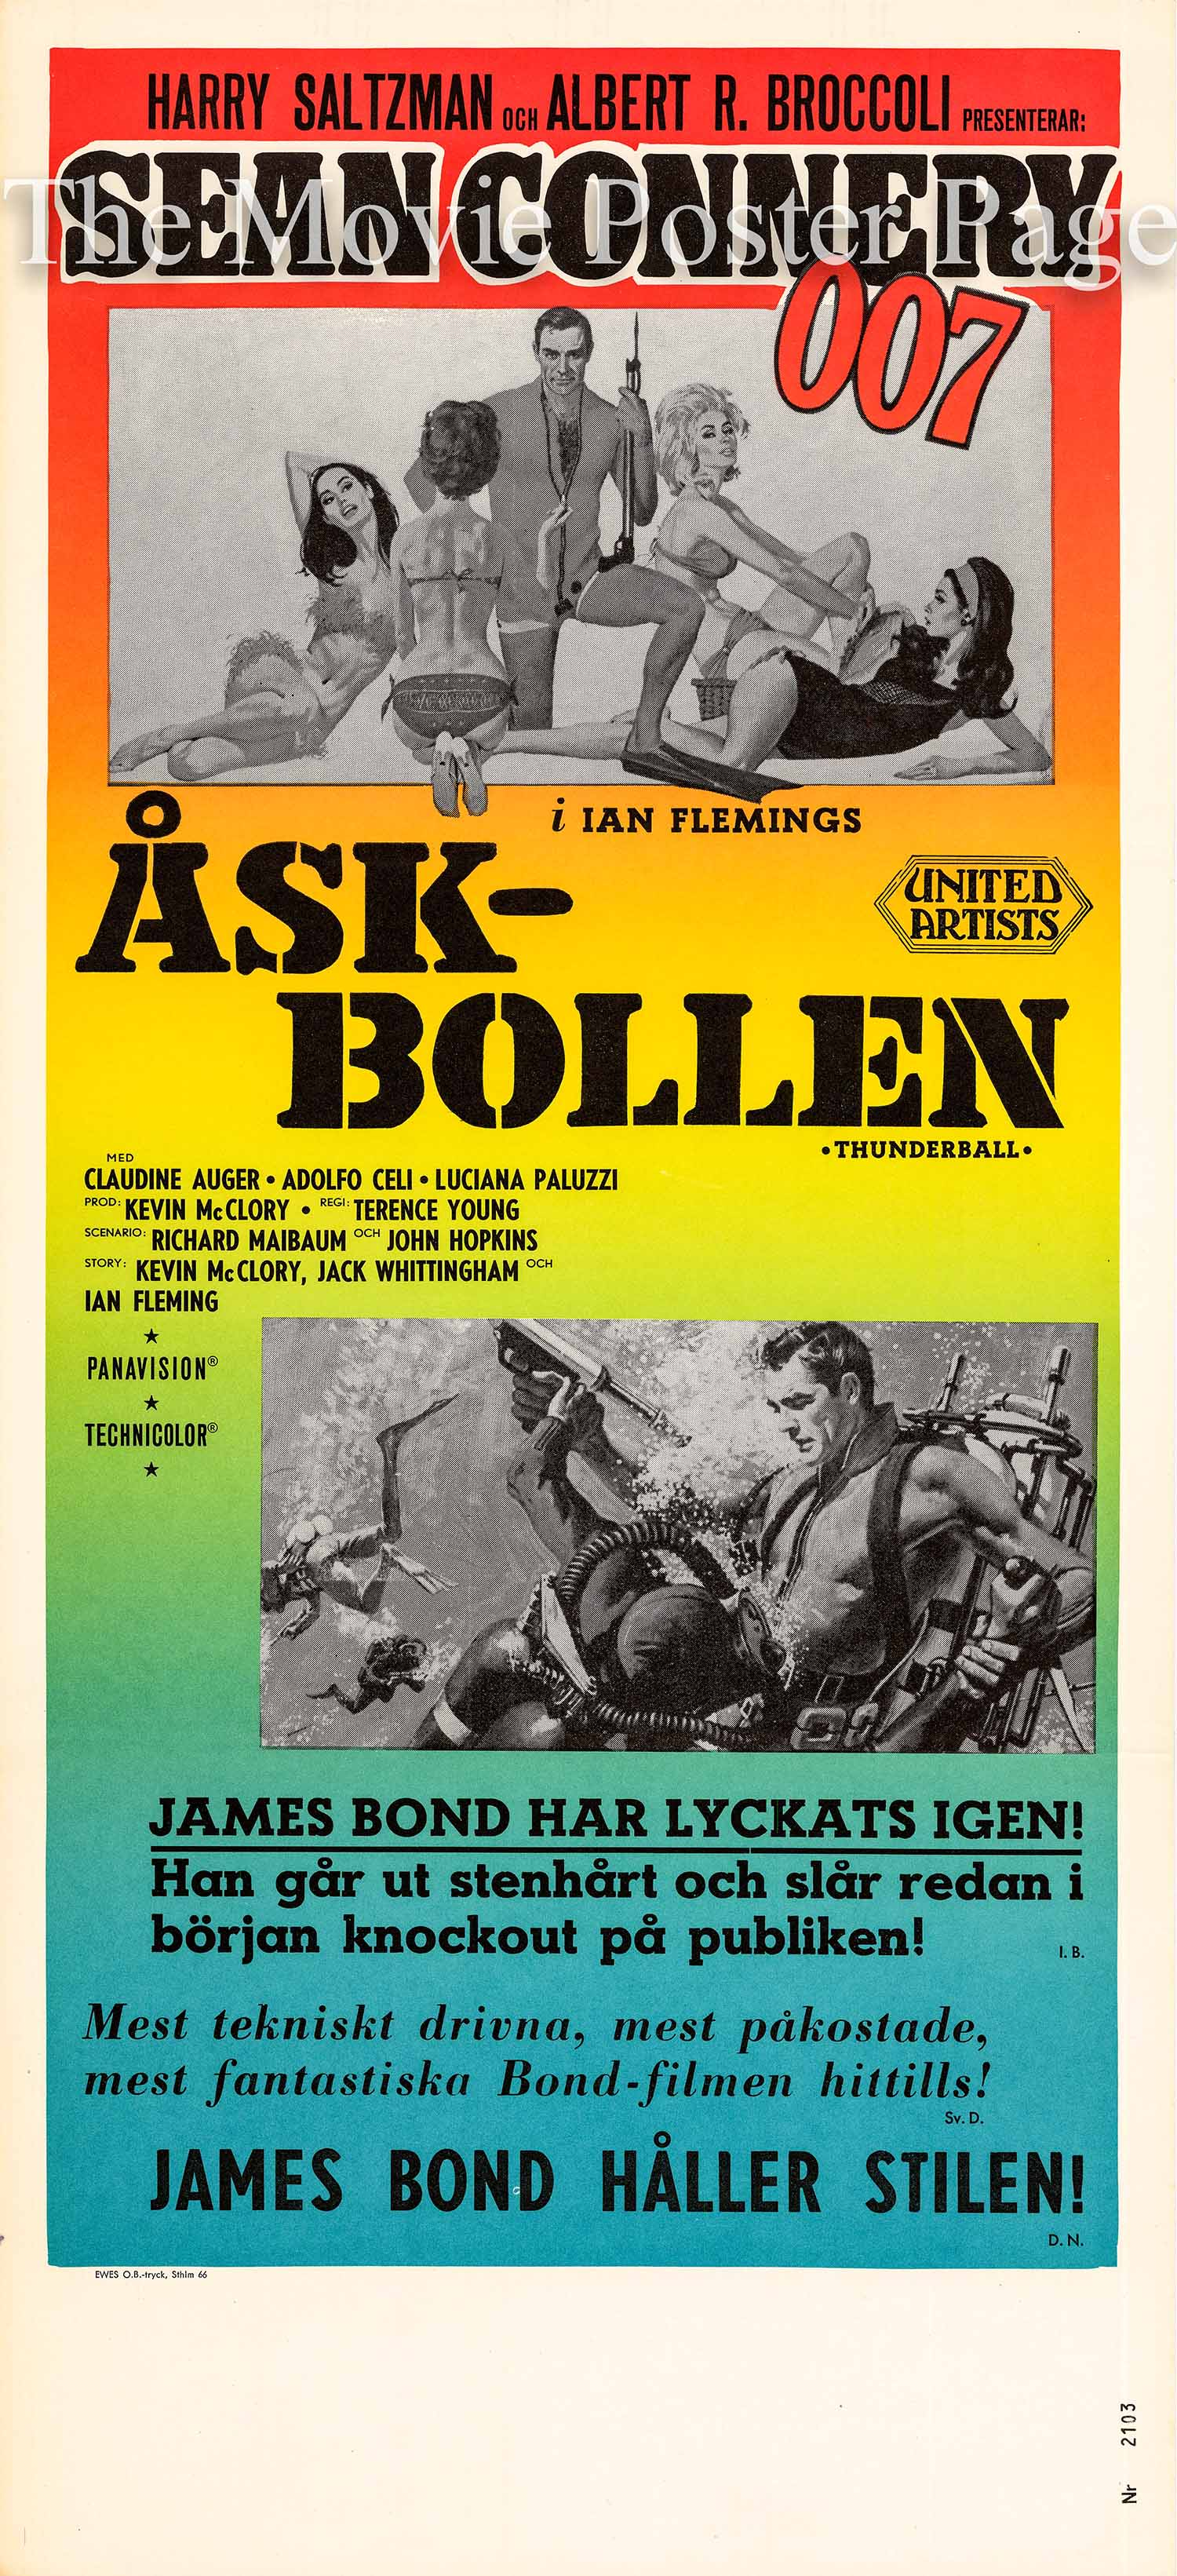 Pictured is a 12.5 x 27.5 Swedish insert poster made to promote the 1965 Terence Young film Thunderball starring Sean Connery as James Bond.